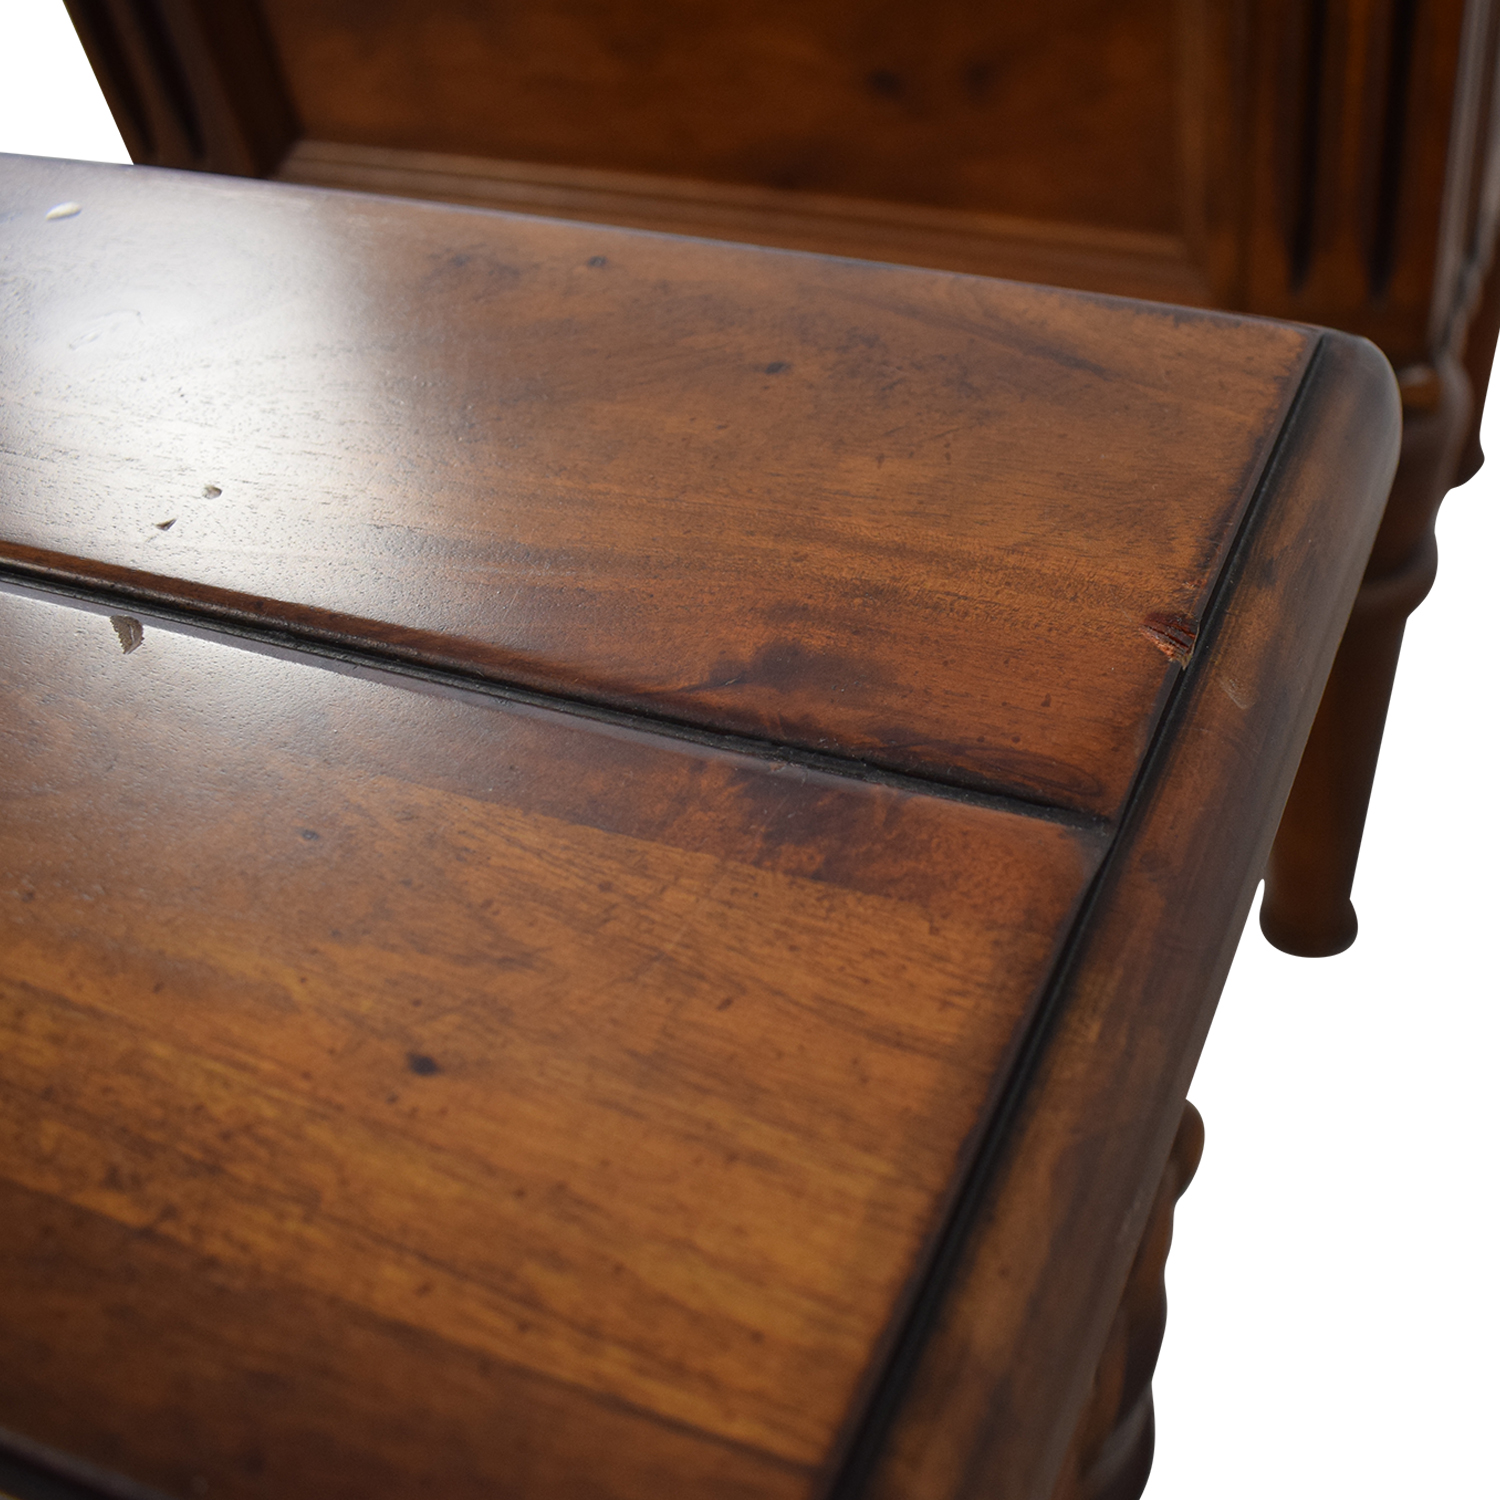 buy Thomasville Ernest Hemingway Collection Single Drawer End Tables Thomasville End Tables